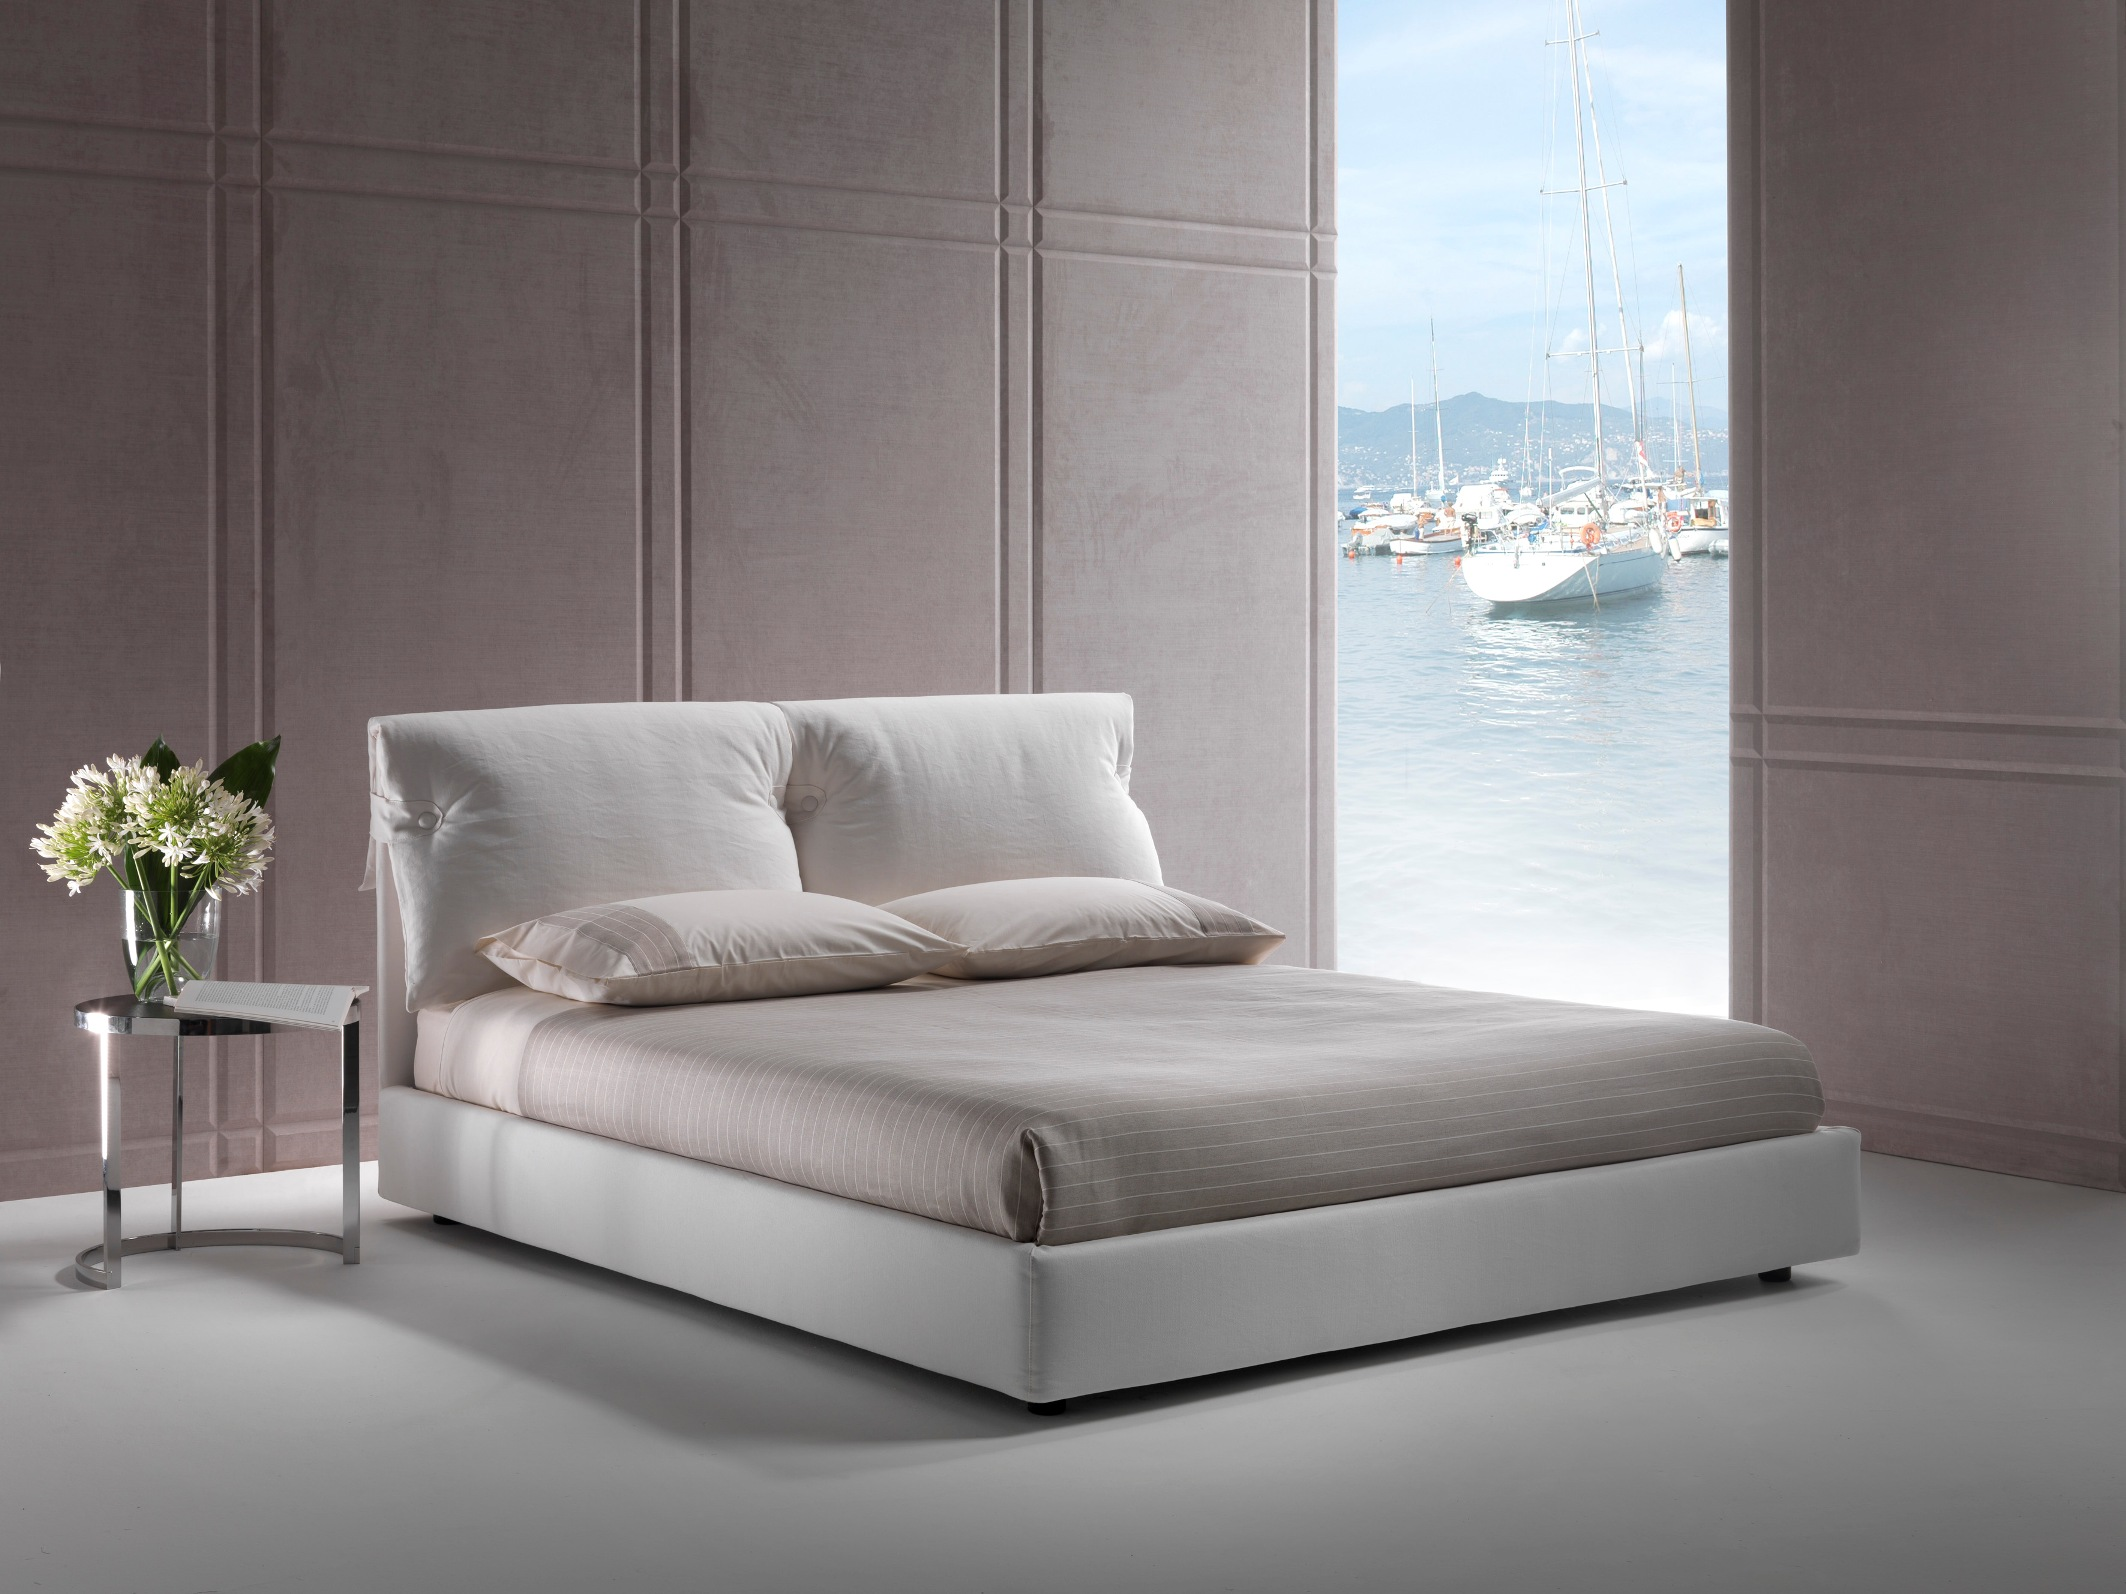 Letto King Size.Bed Storage Natalia Double Lift King Size Newformsdesign Outlet